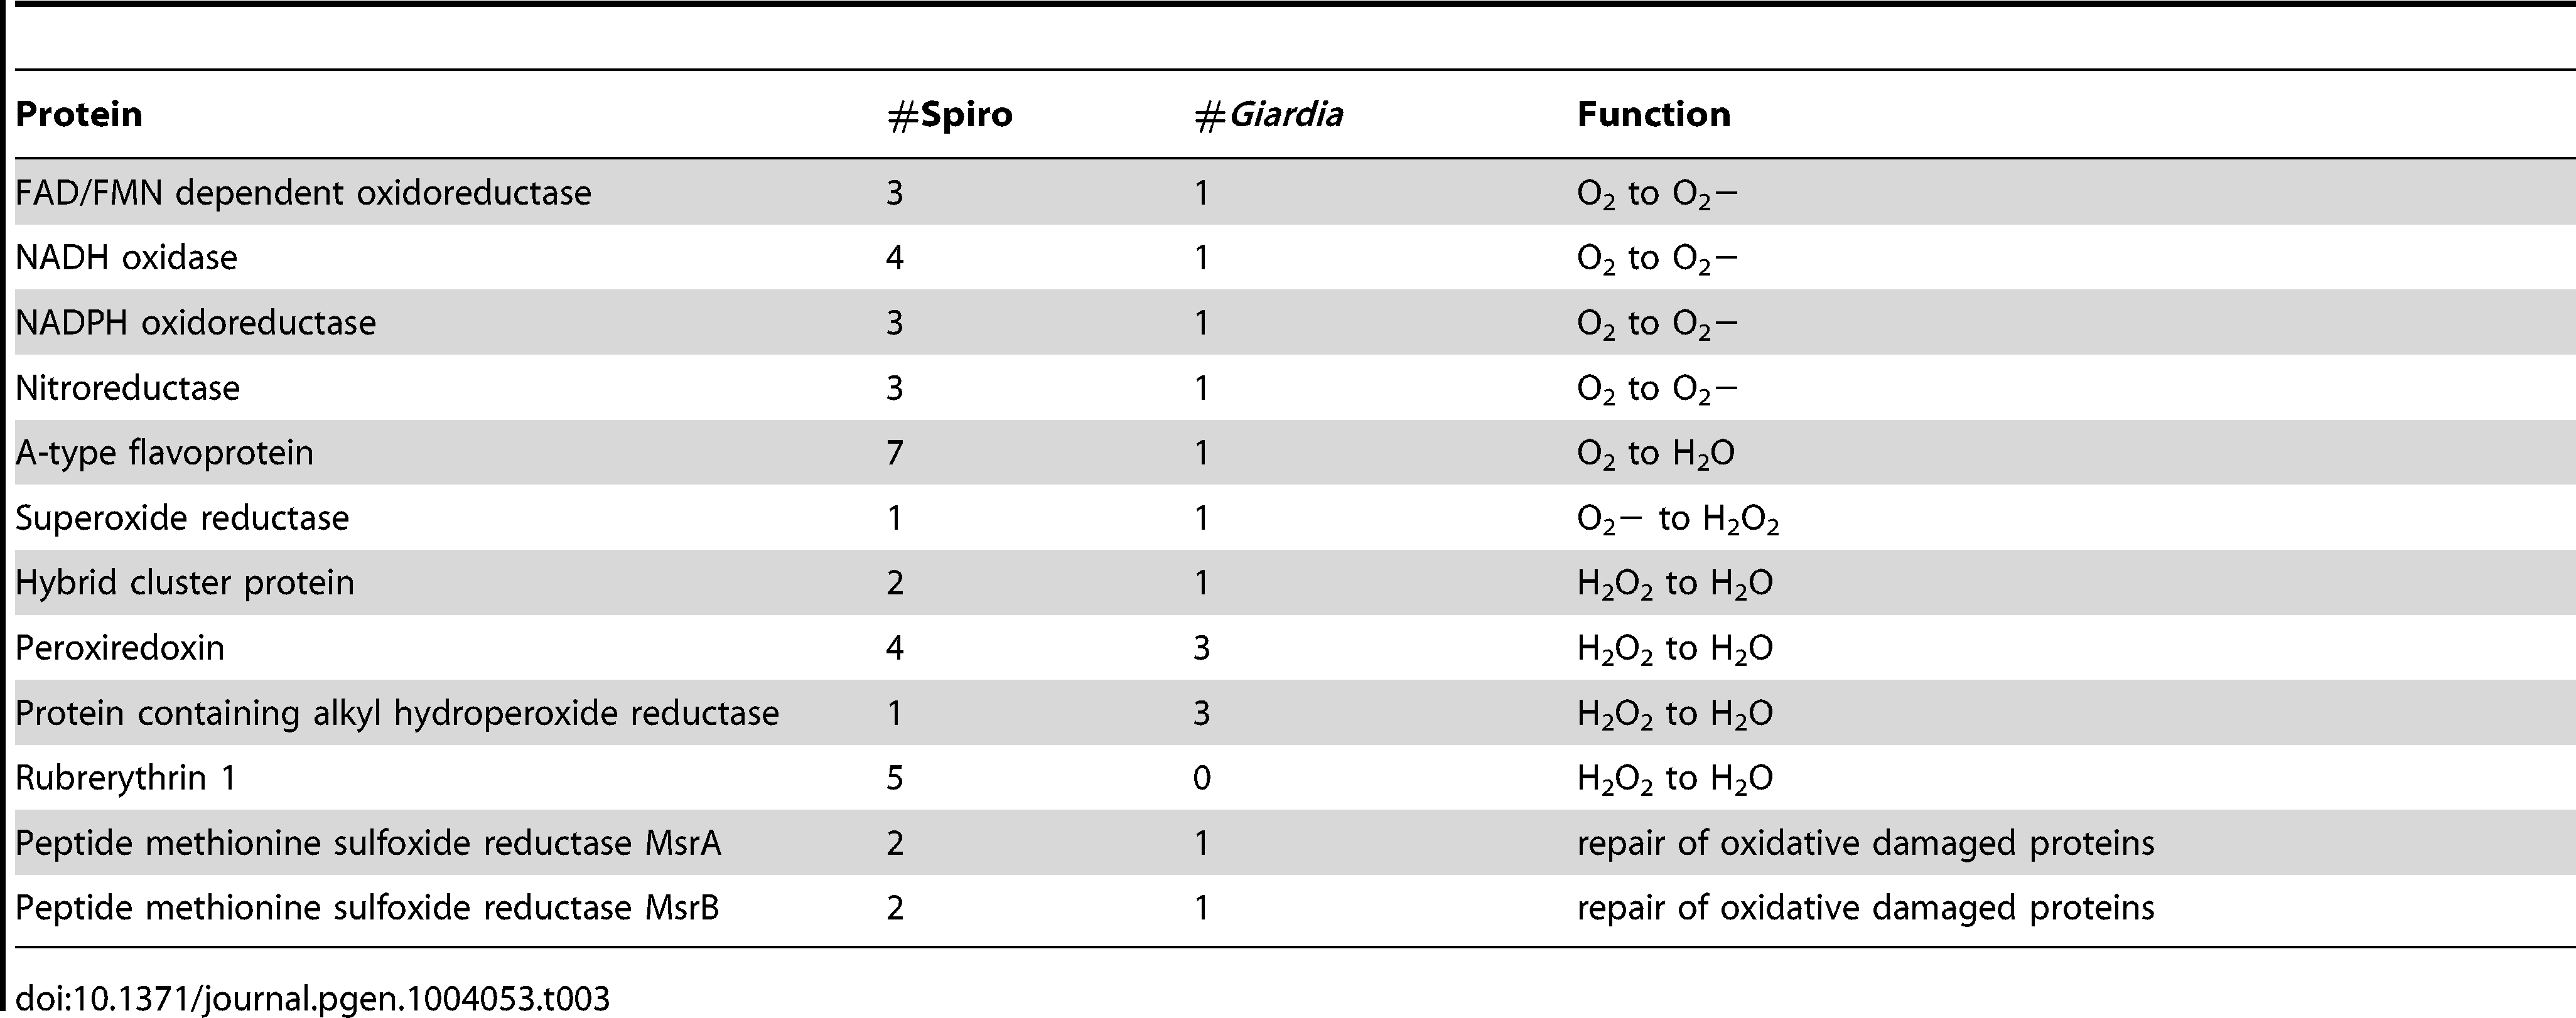 Enzymes involved in the oxidative stress response.